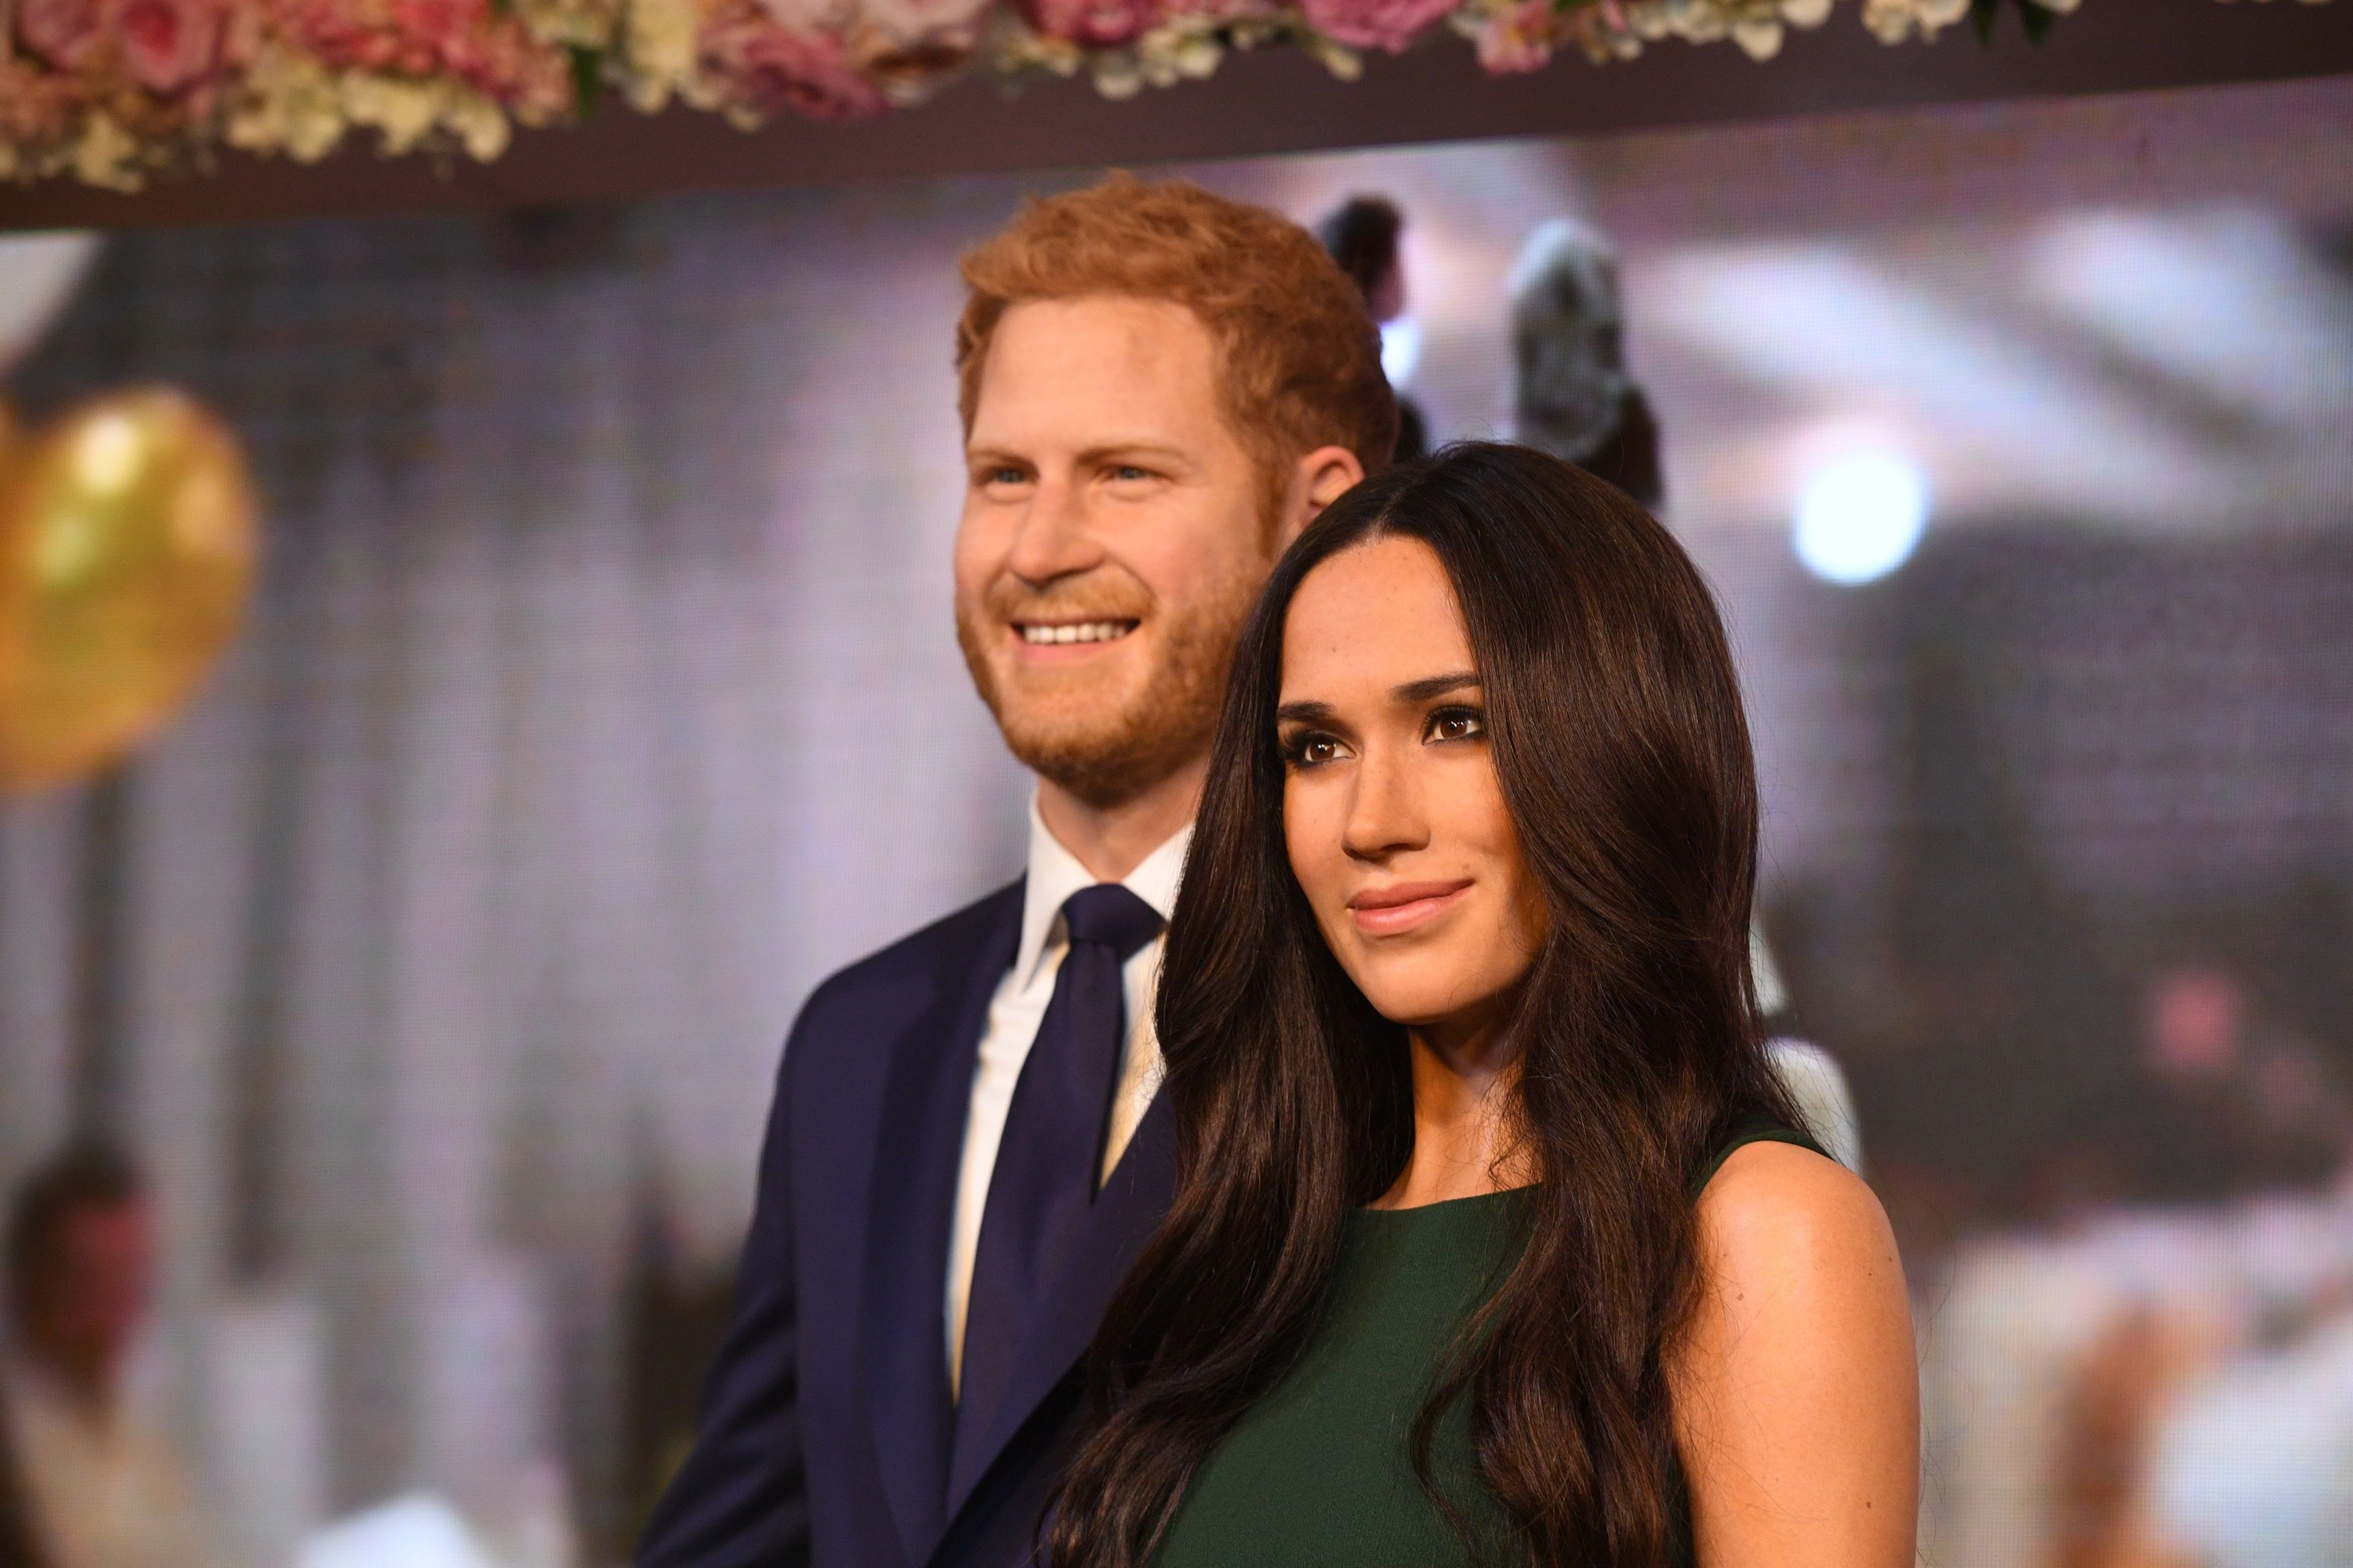 Spotted: Meghan Markle and Prince Harry at a Wax Museum""